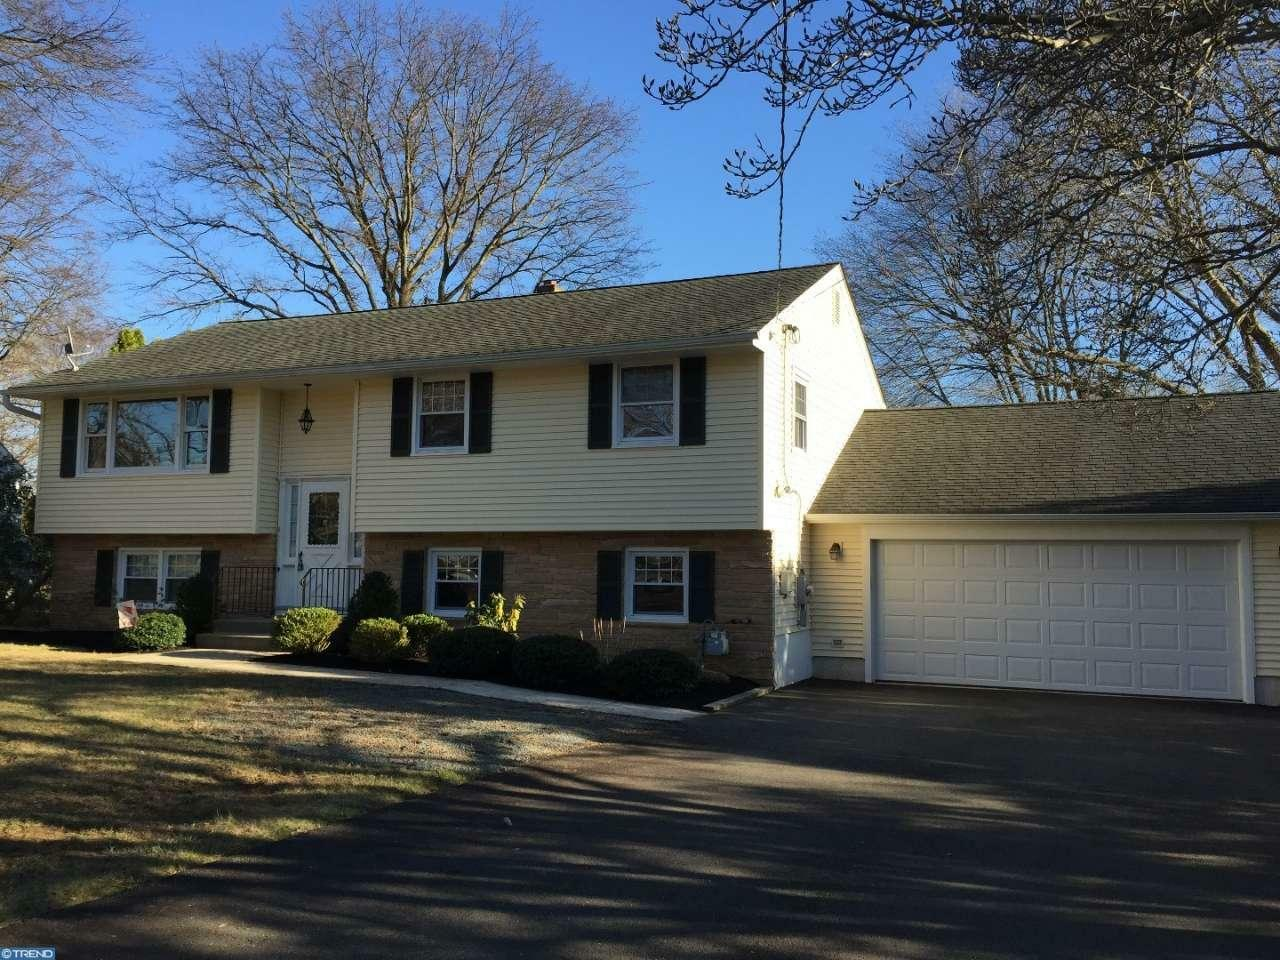 21 Malaga Dr, Ewing, NJ - USA (photo 1)